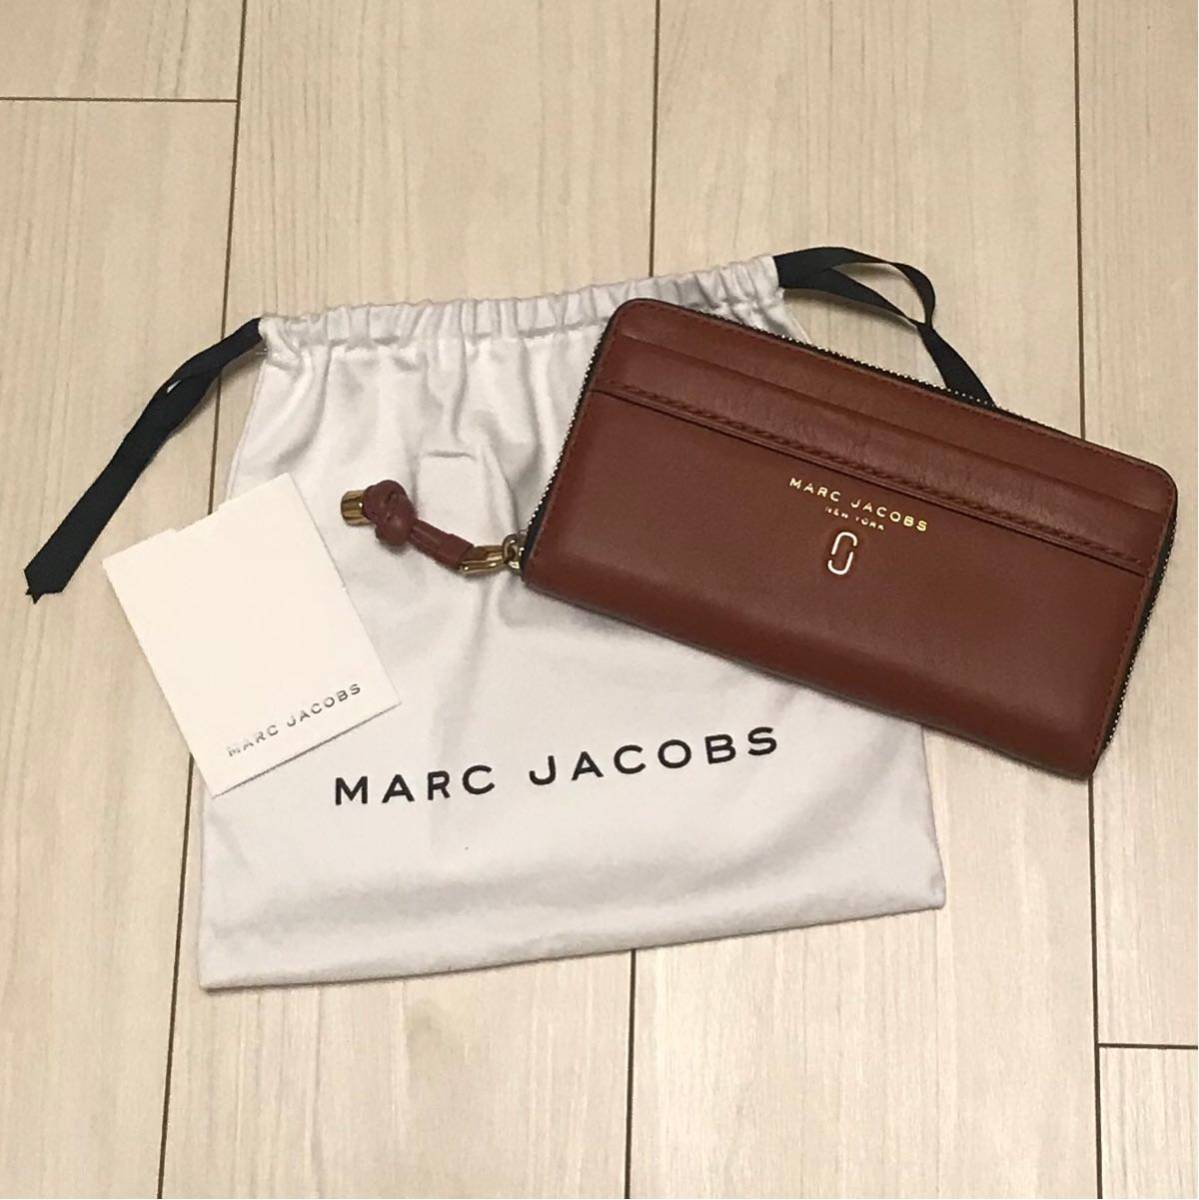 a634d4f7e927 未使用品 MARC JACOBS ラウンドファスナー 長財布 Tied Up Standard Continental Wallet タイドアップ